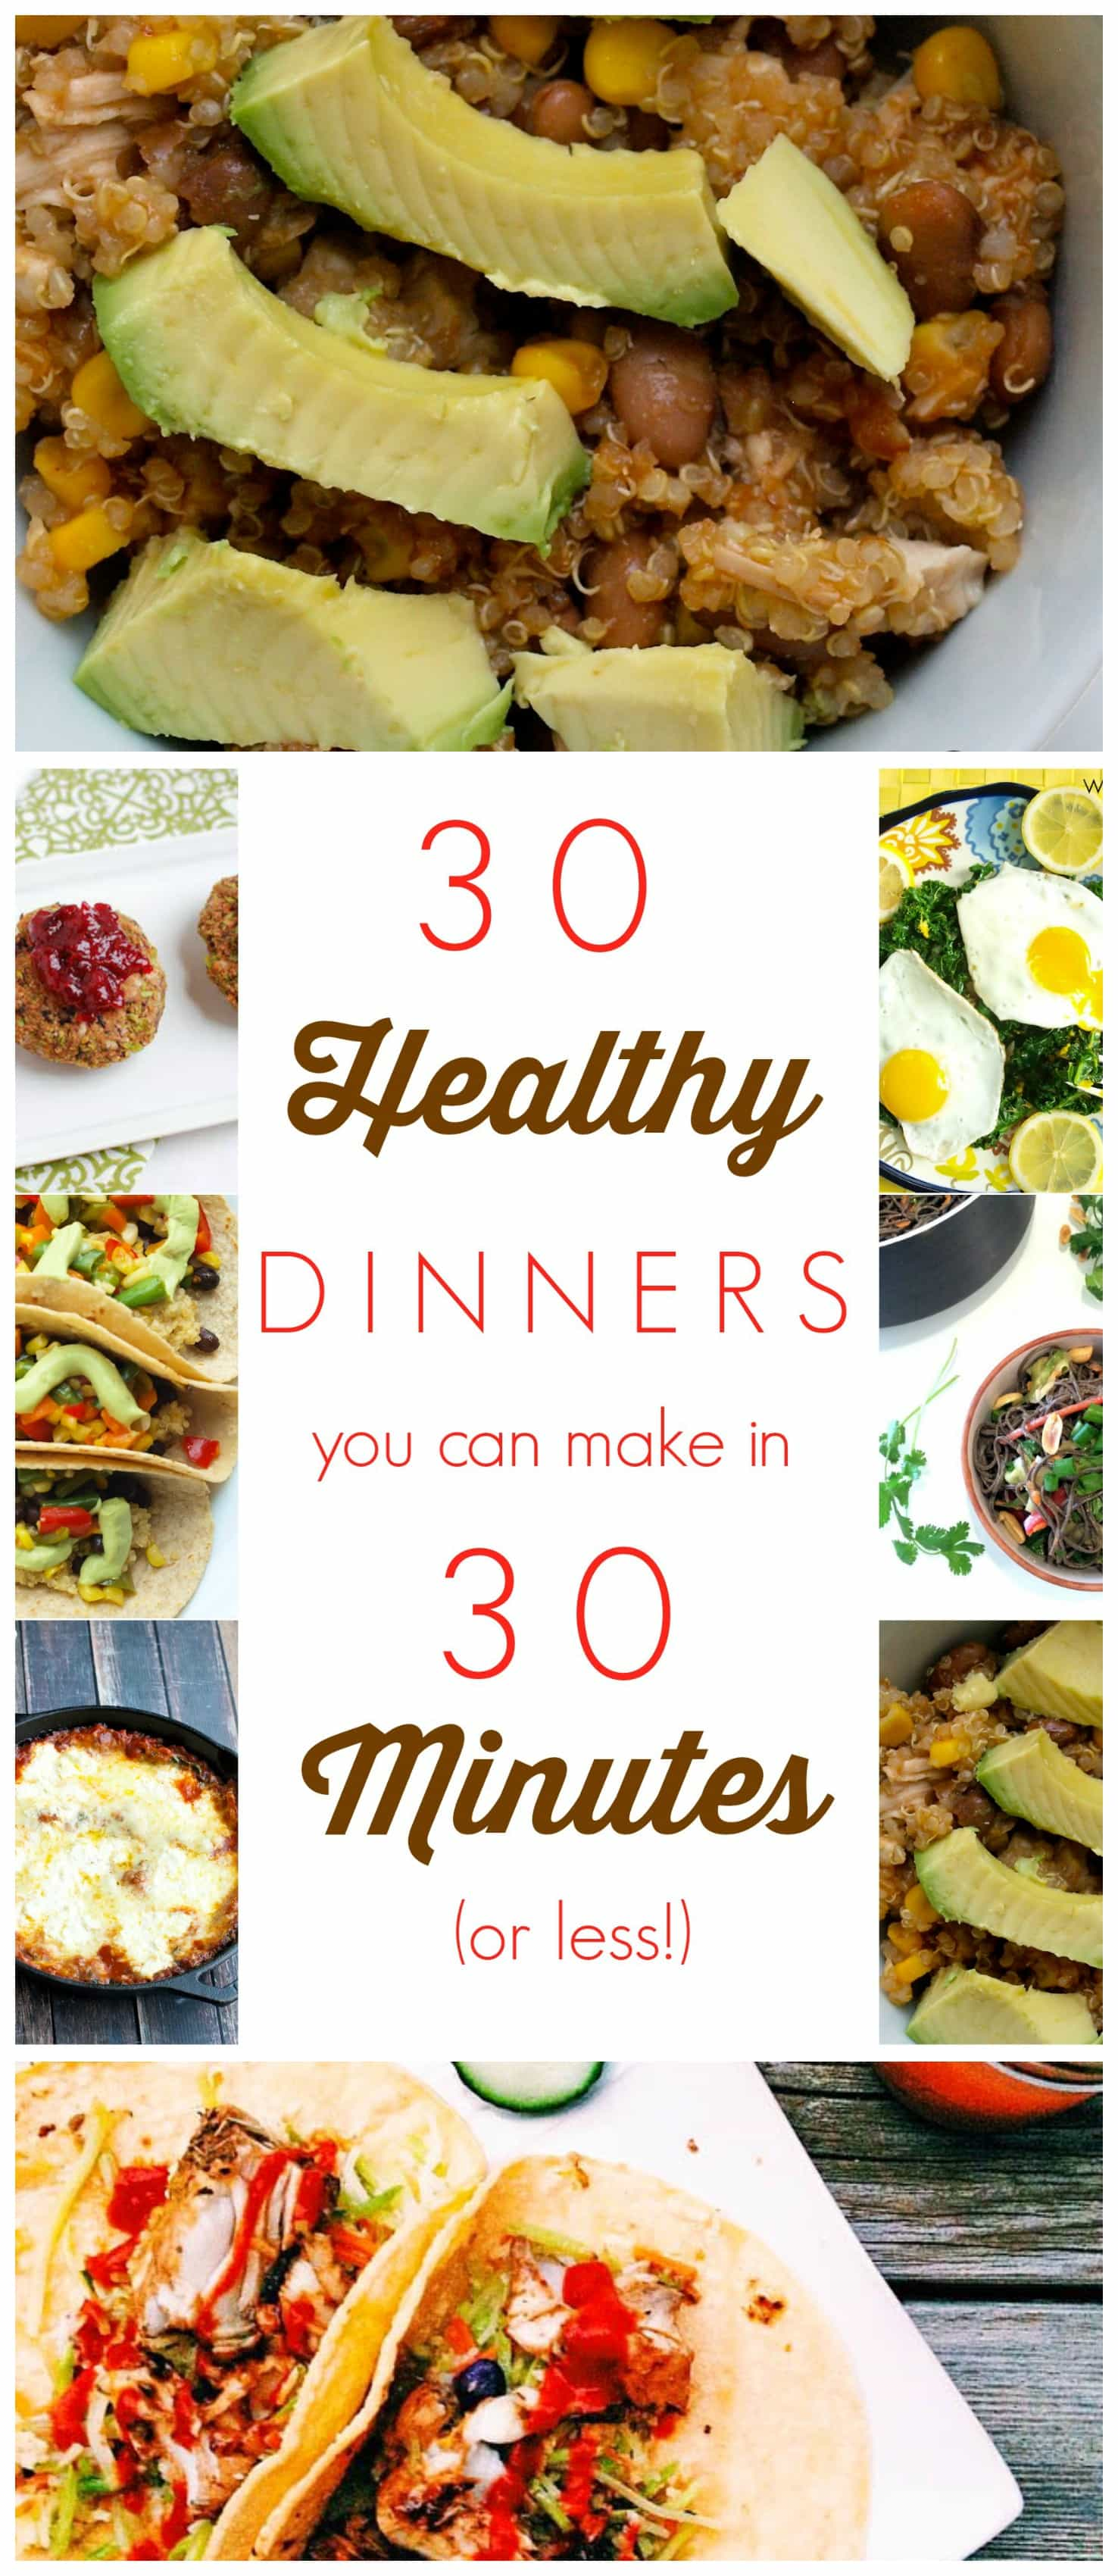 30 Minuten Küche Easy Cooking 30 Healthy Dinners You Can Make In 30 Minutes (or Less